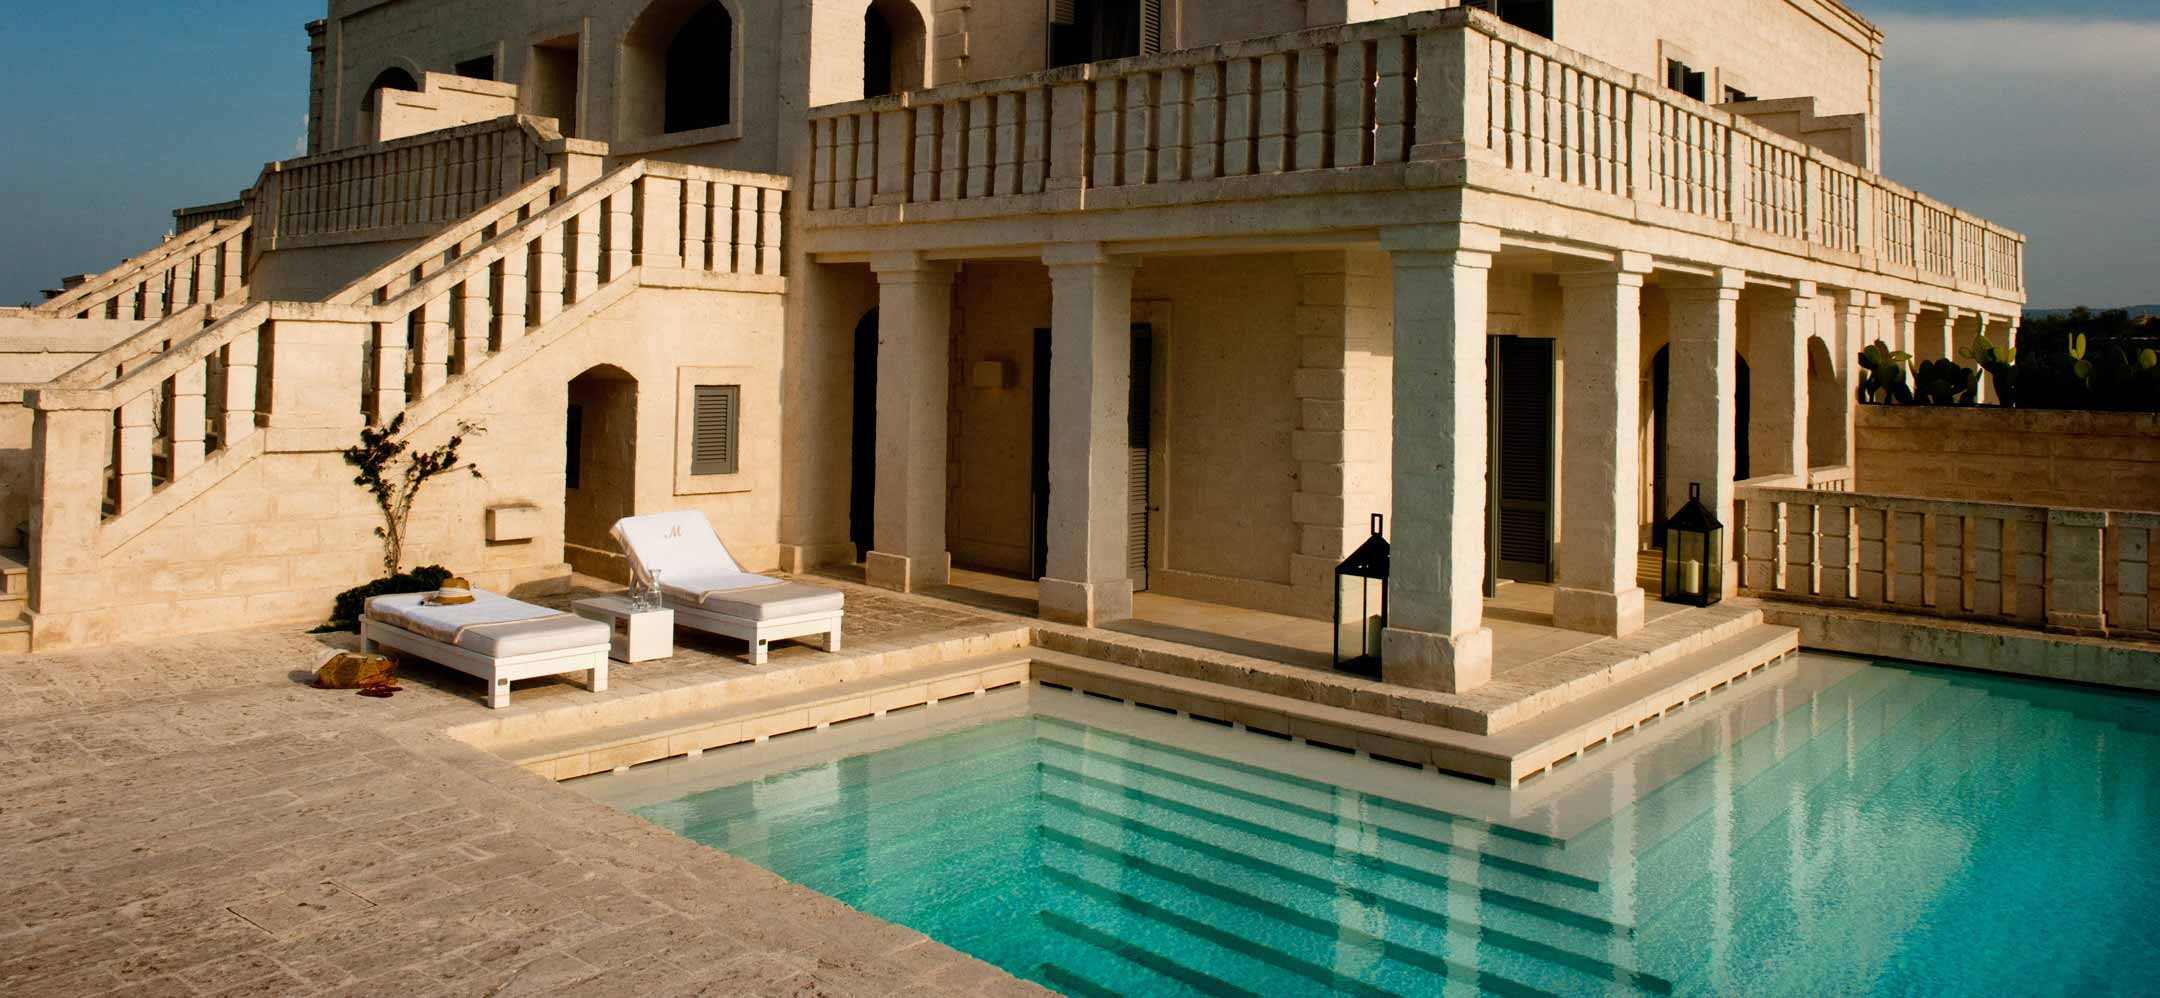 Italy holidays luxury holidays to italy sardatur holidays for Borgo egnazia resort in puglia